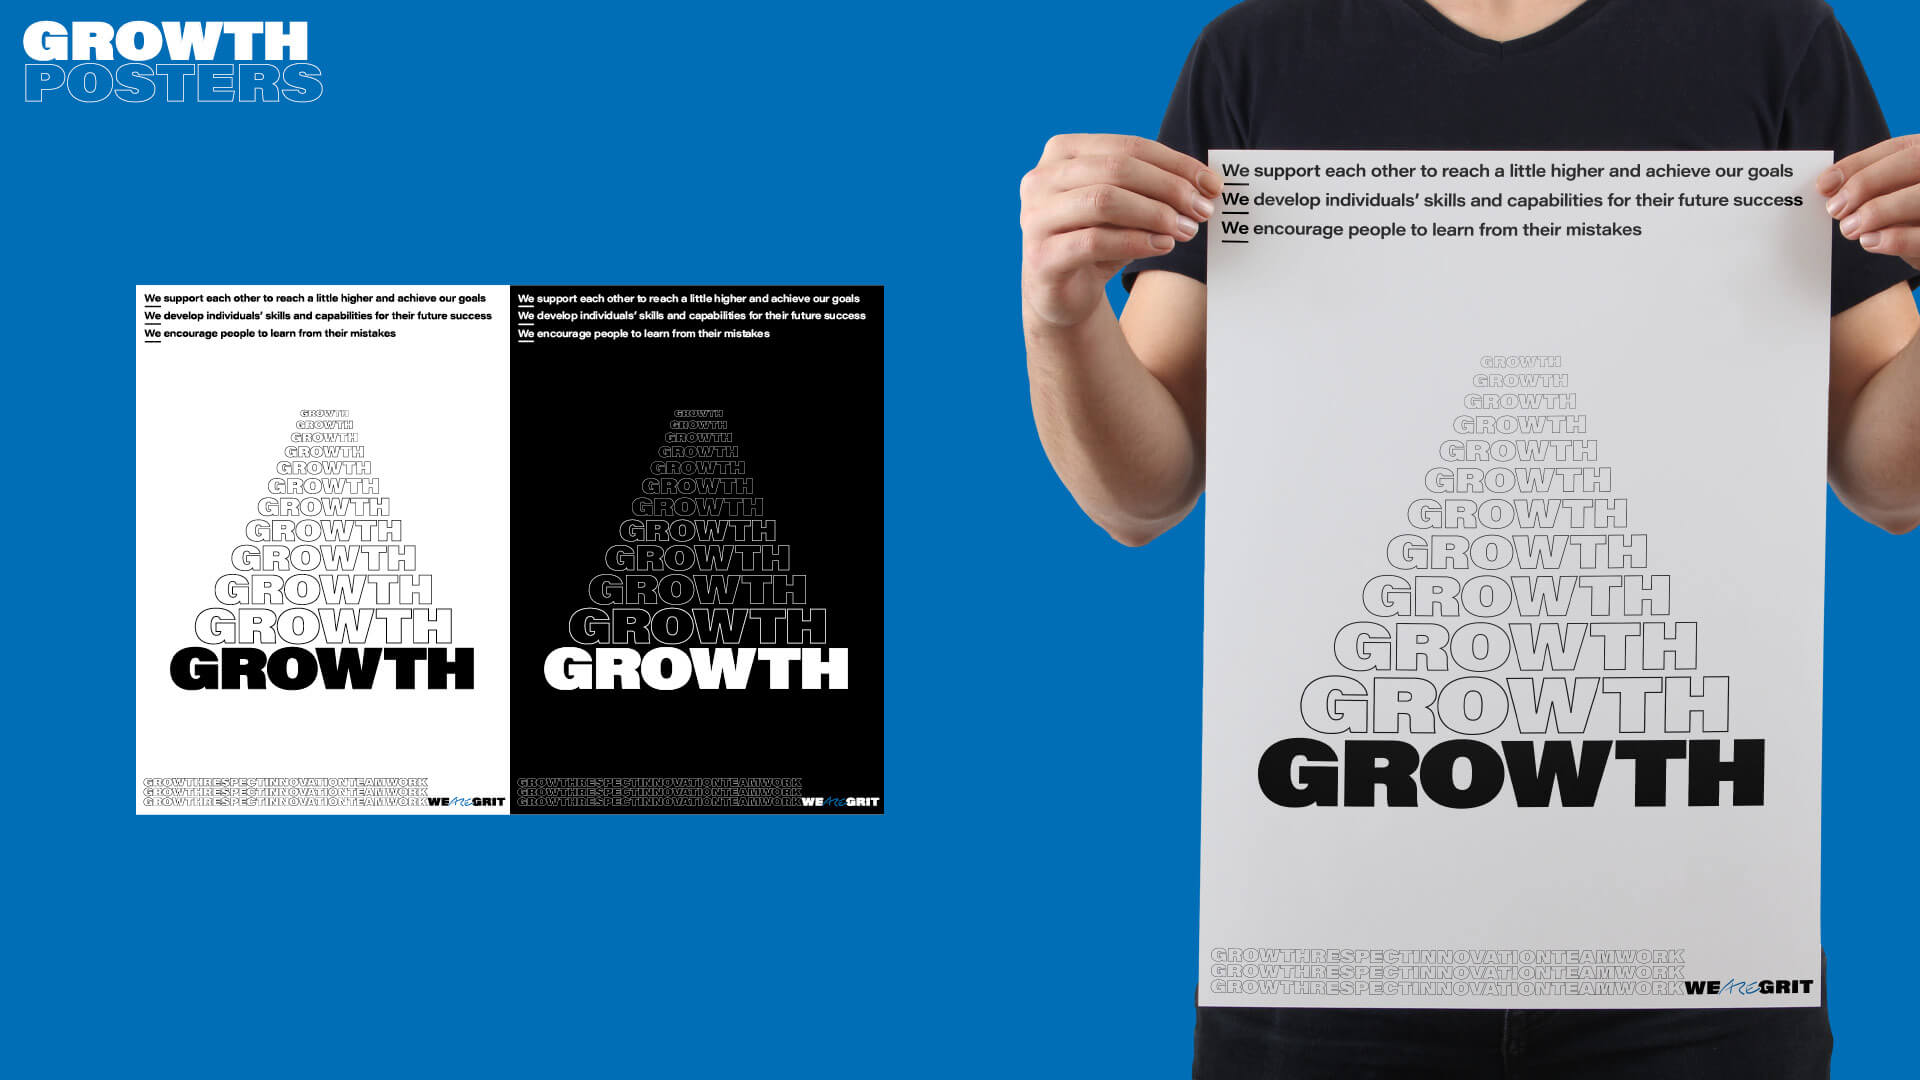 We ARE Grit – Growth Poster